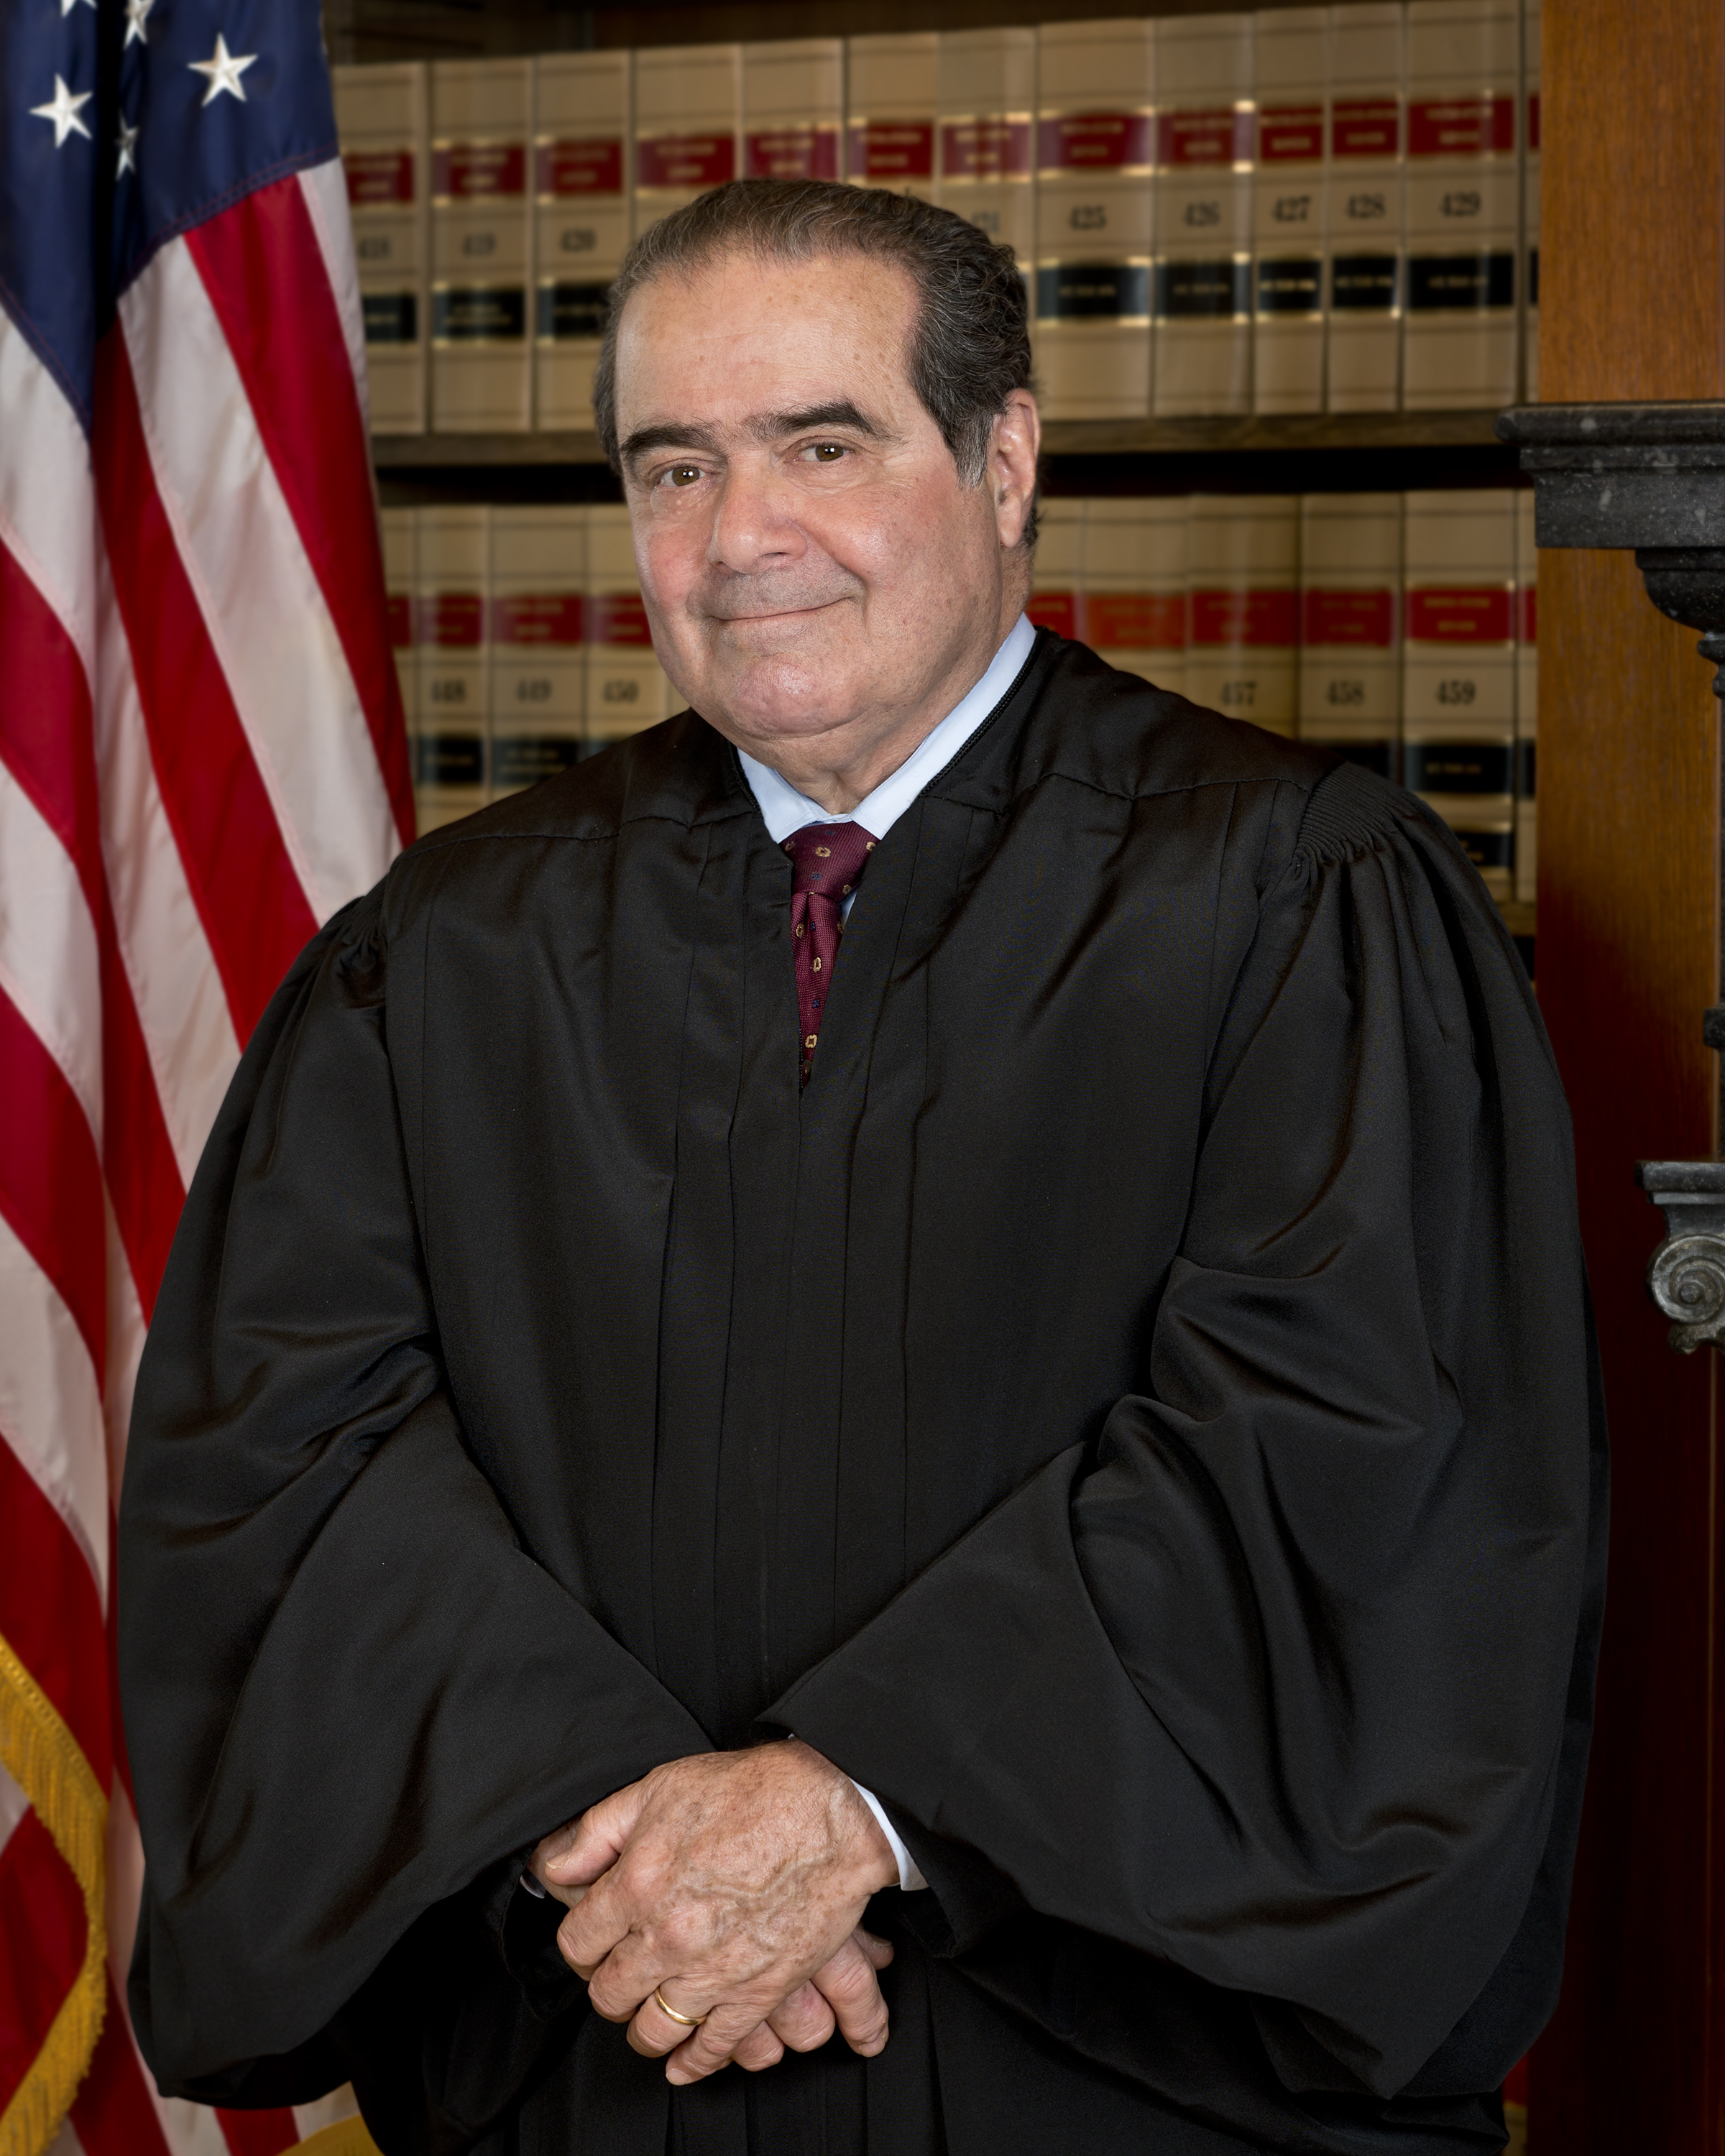 justice scalia how tall